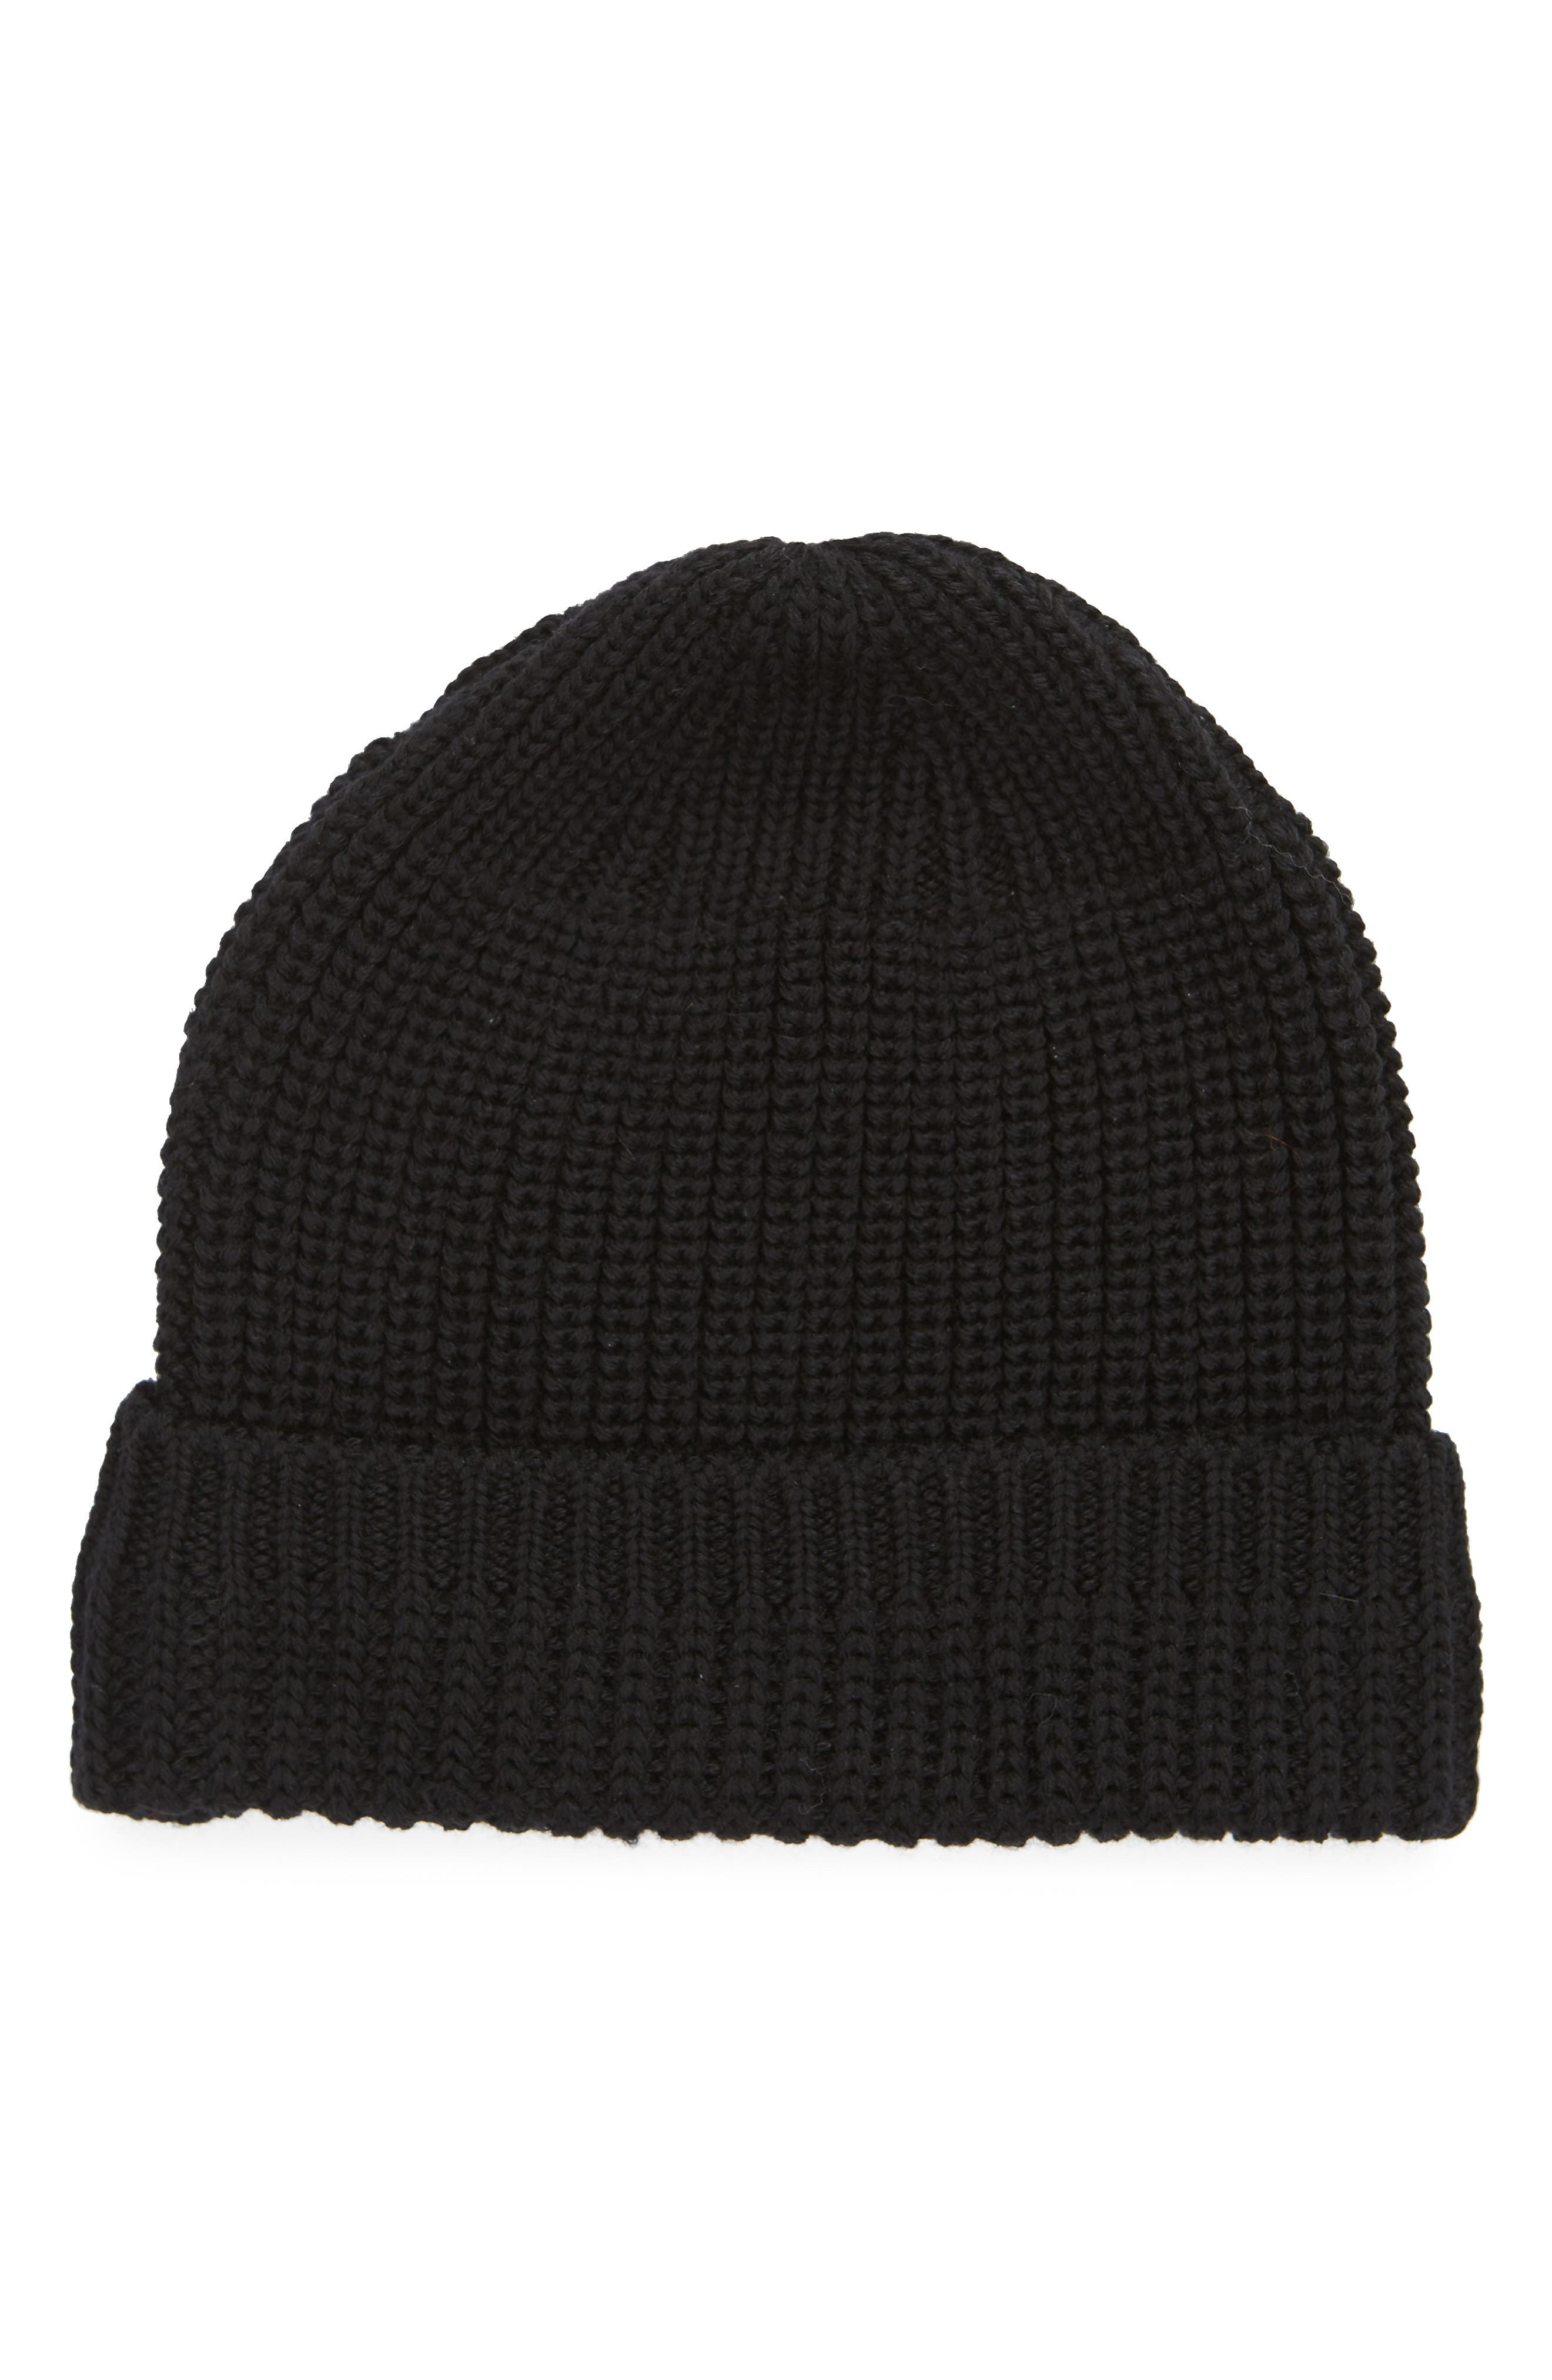 WINGS + HORNS Knit Wool Beanie, Main, color, 001